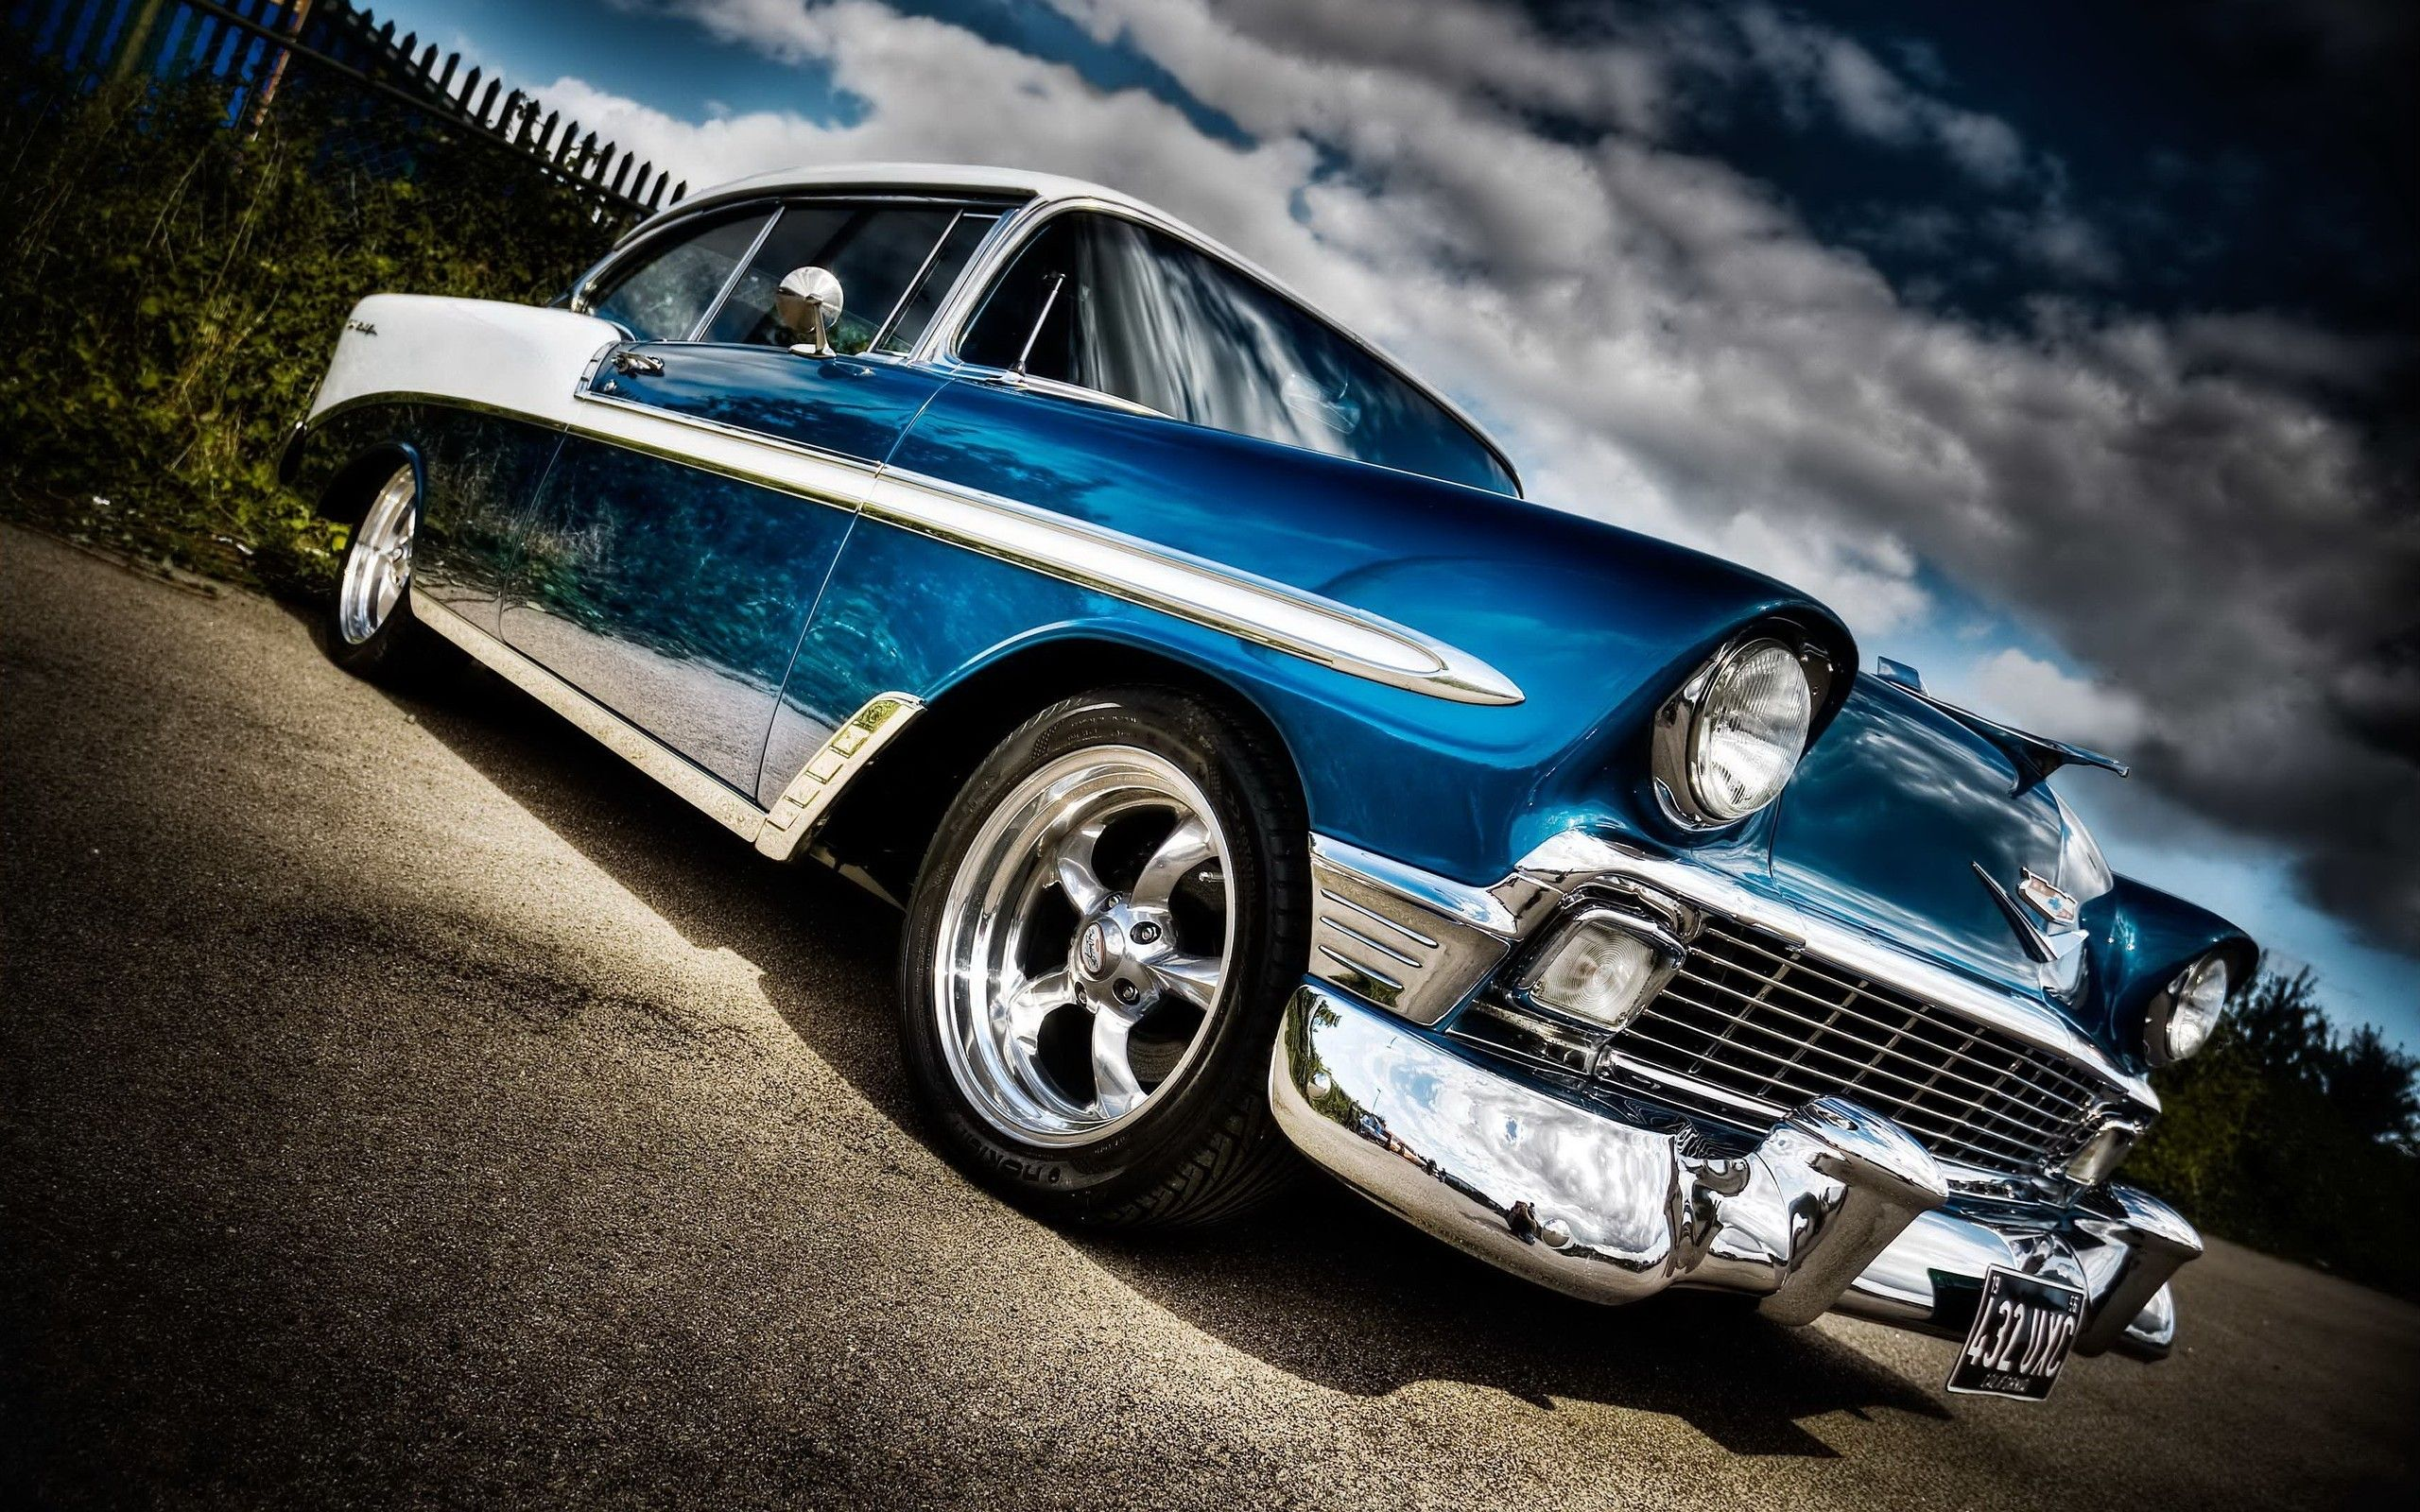 Great Picture Of A Sweet Car With Images Old Classic Cars Car